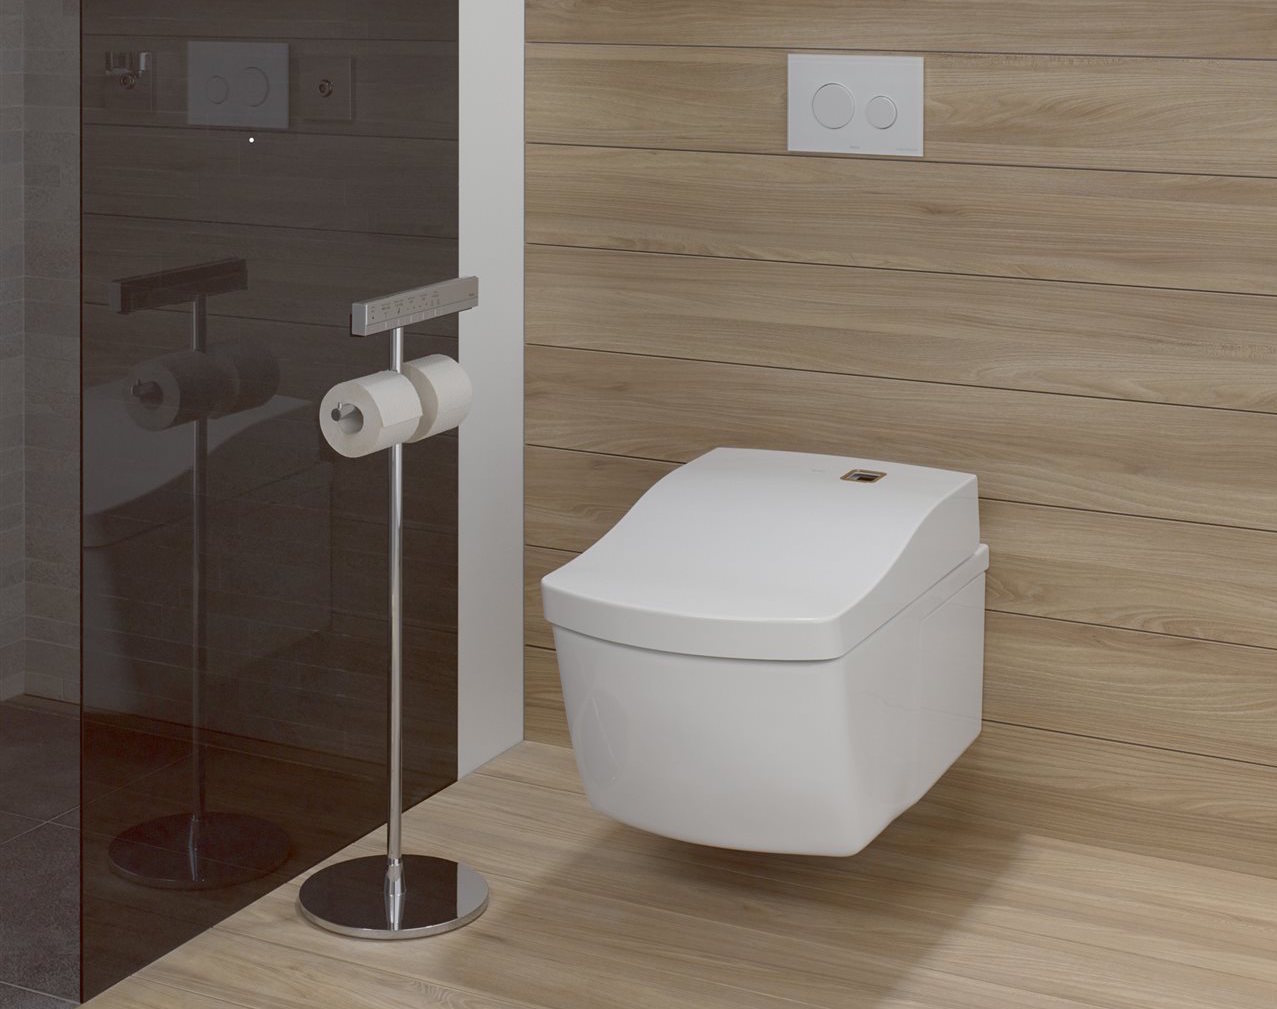 Make the Bathroom the Smartest Room in the House